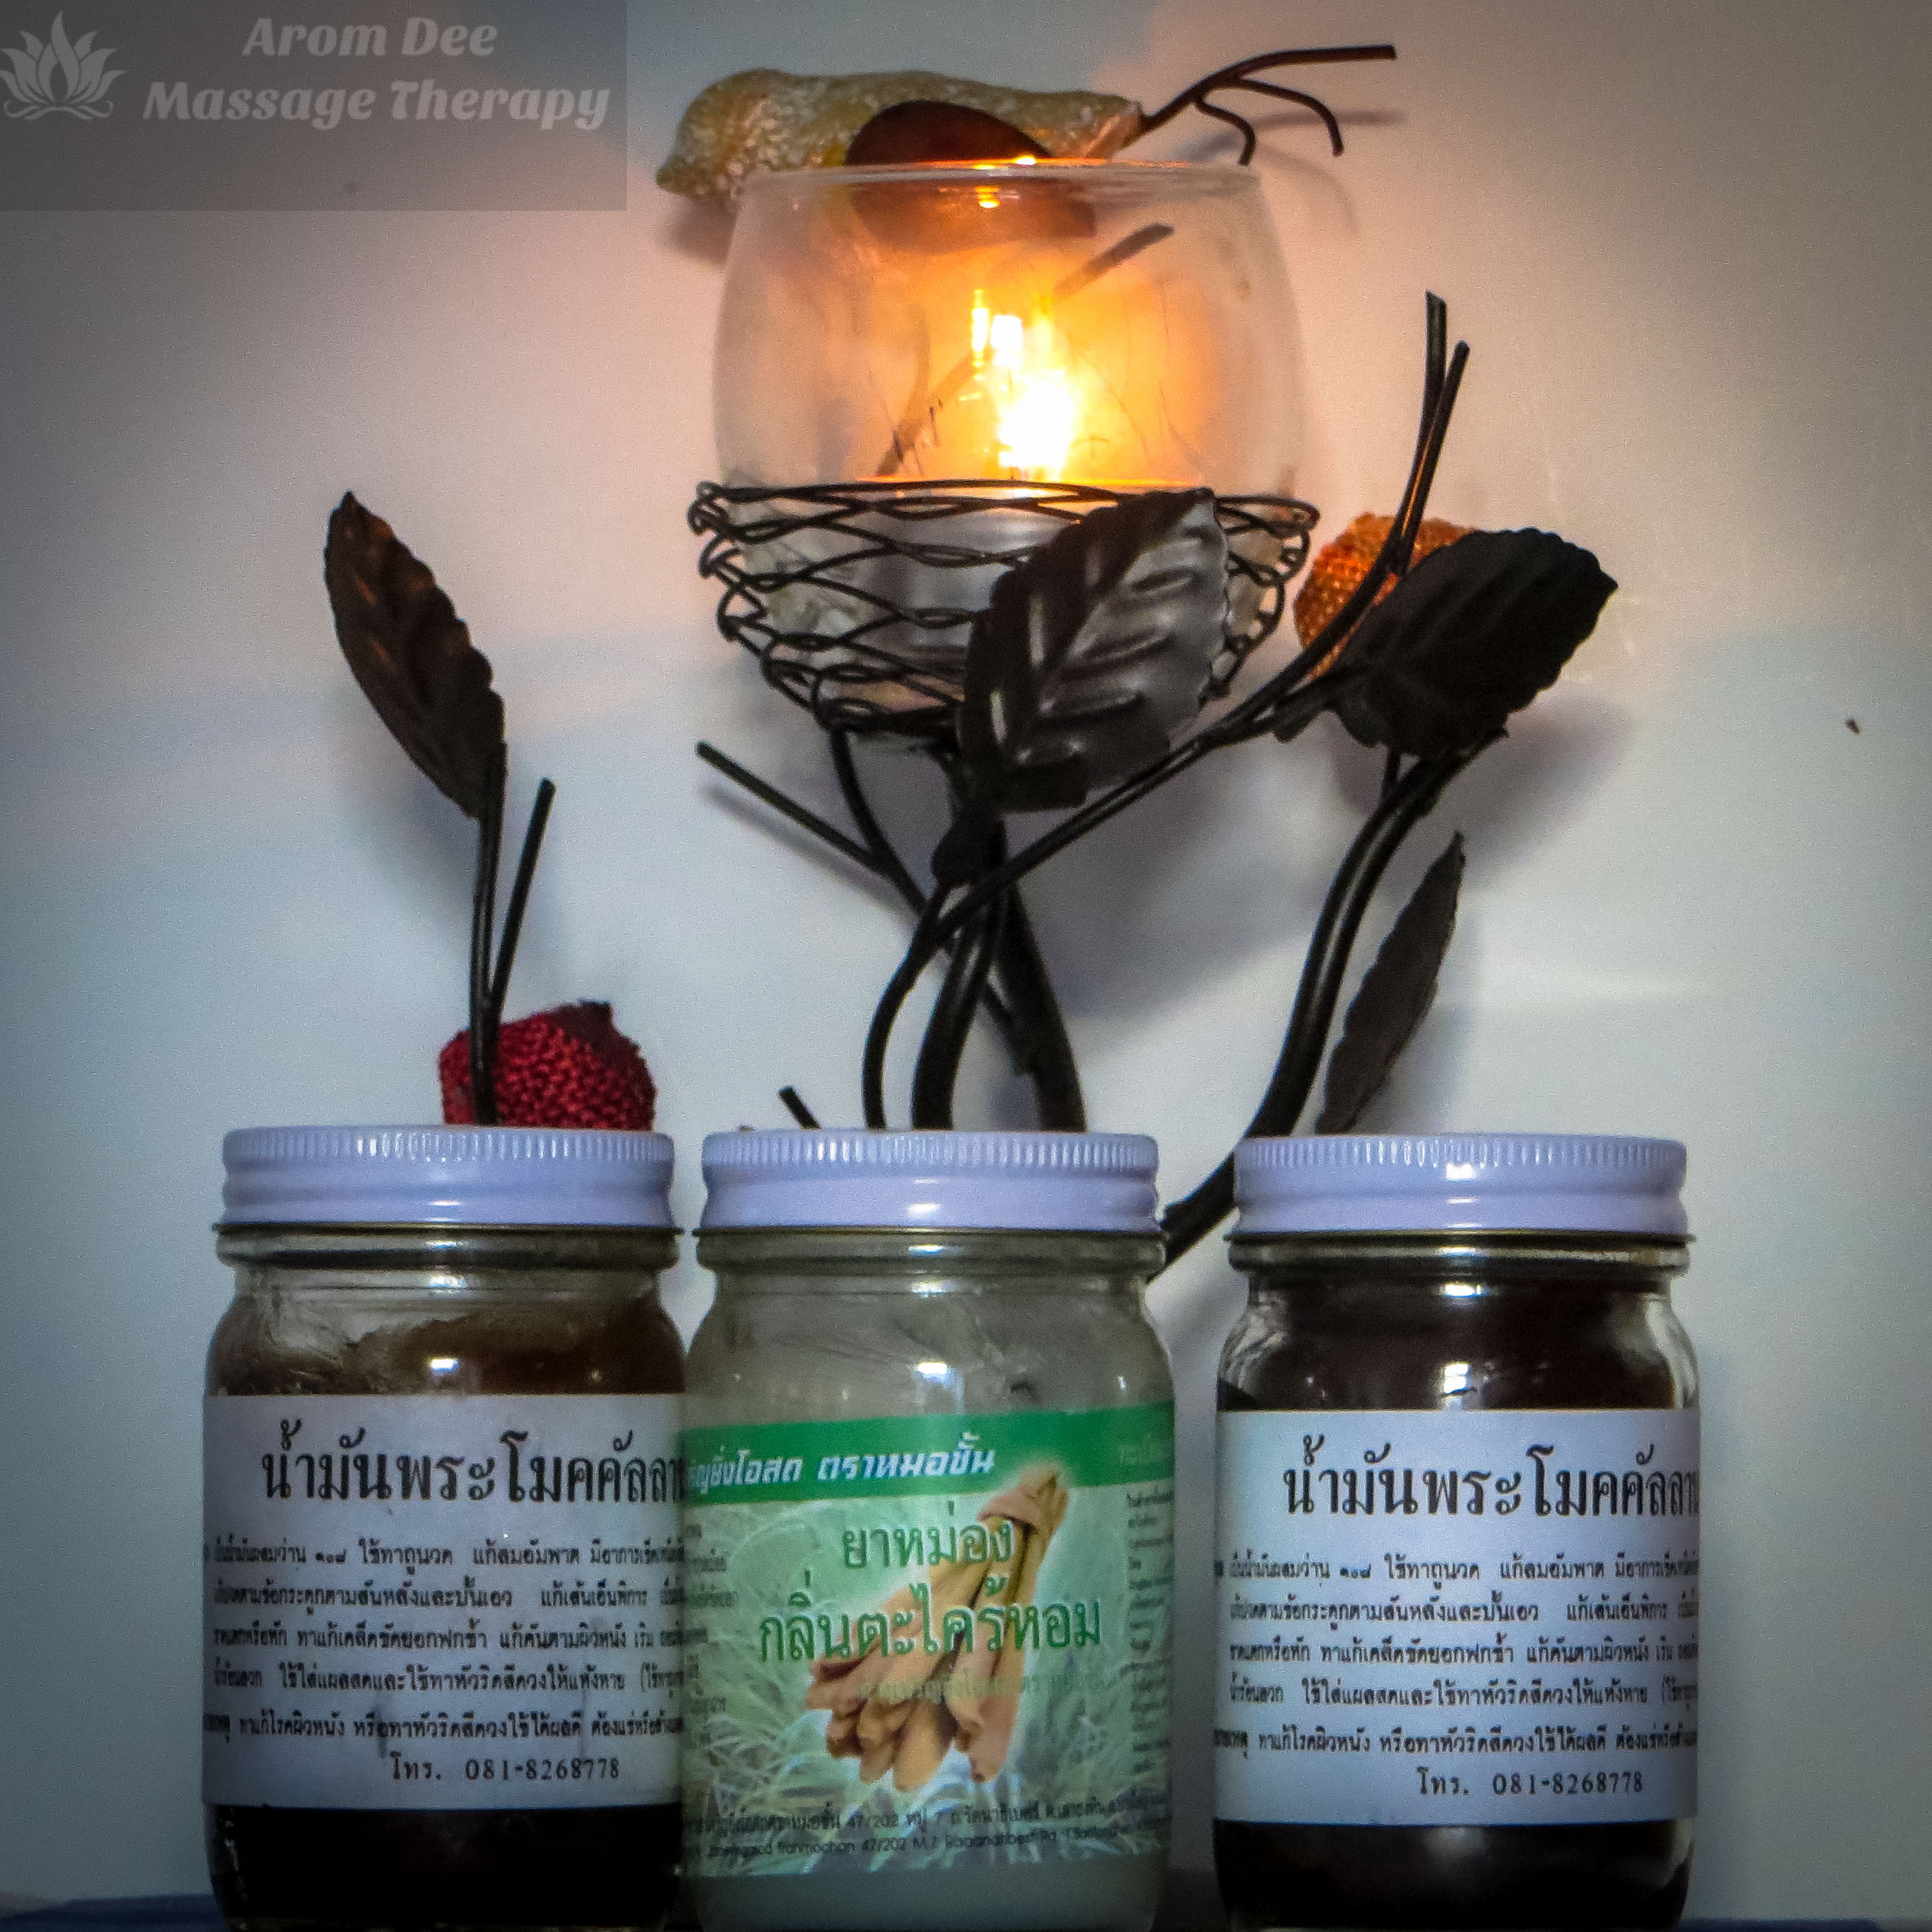 Three jars of Thai massage balm and candle